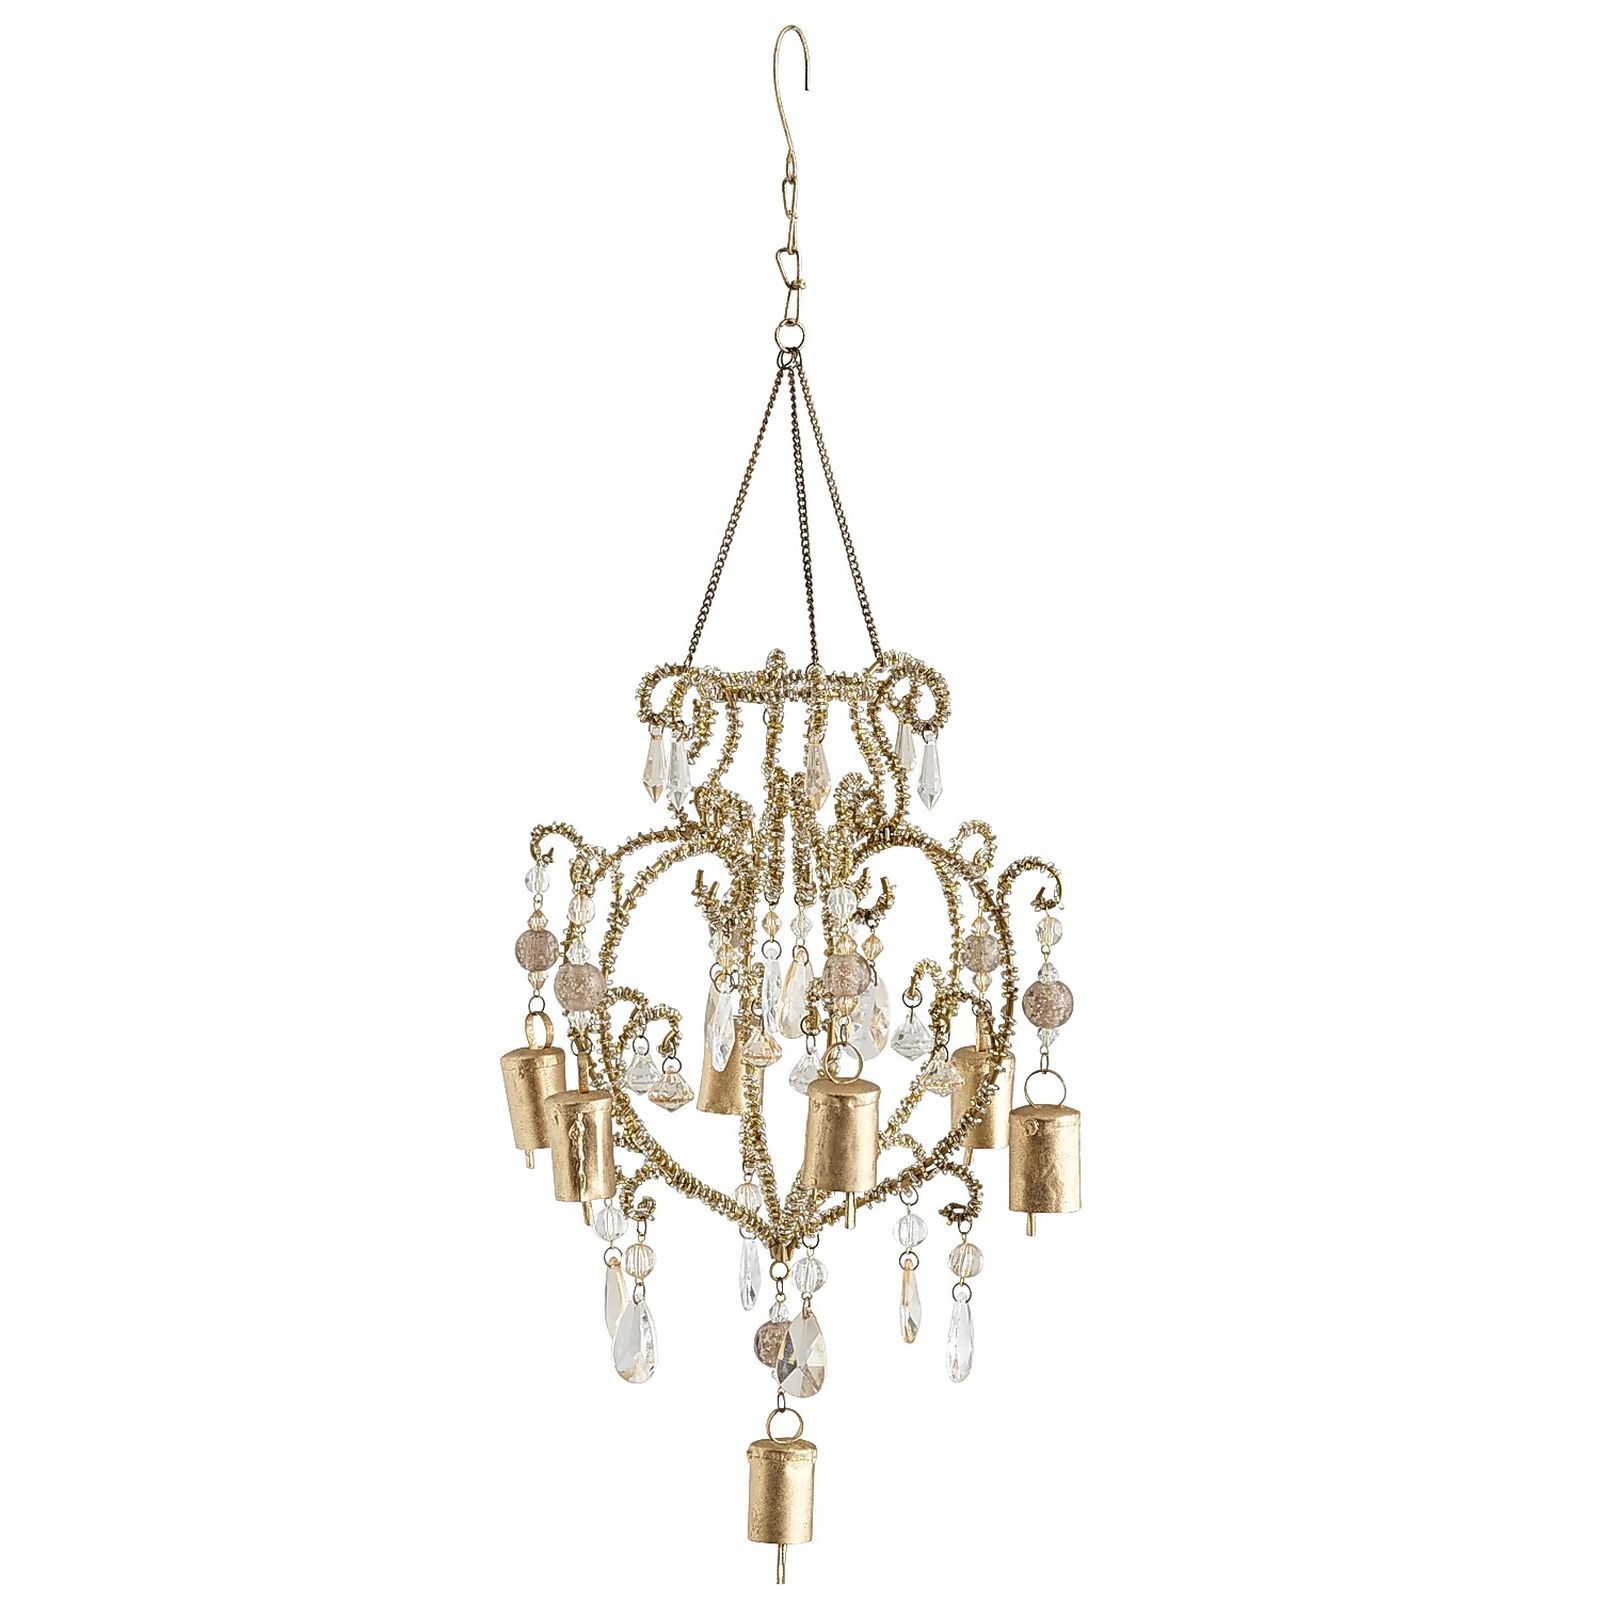 The Earliest Chandeliers Were Used By The Wealthy In Medieval